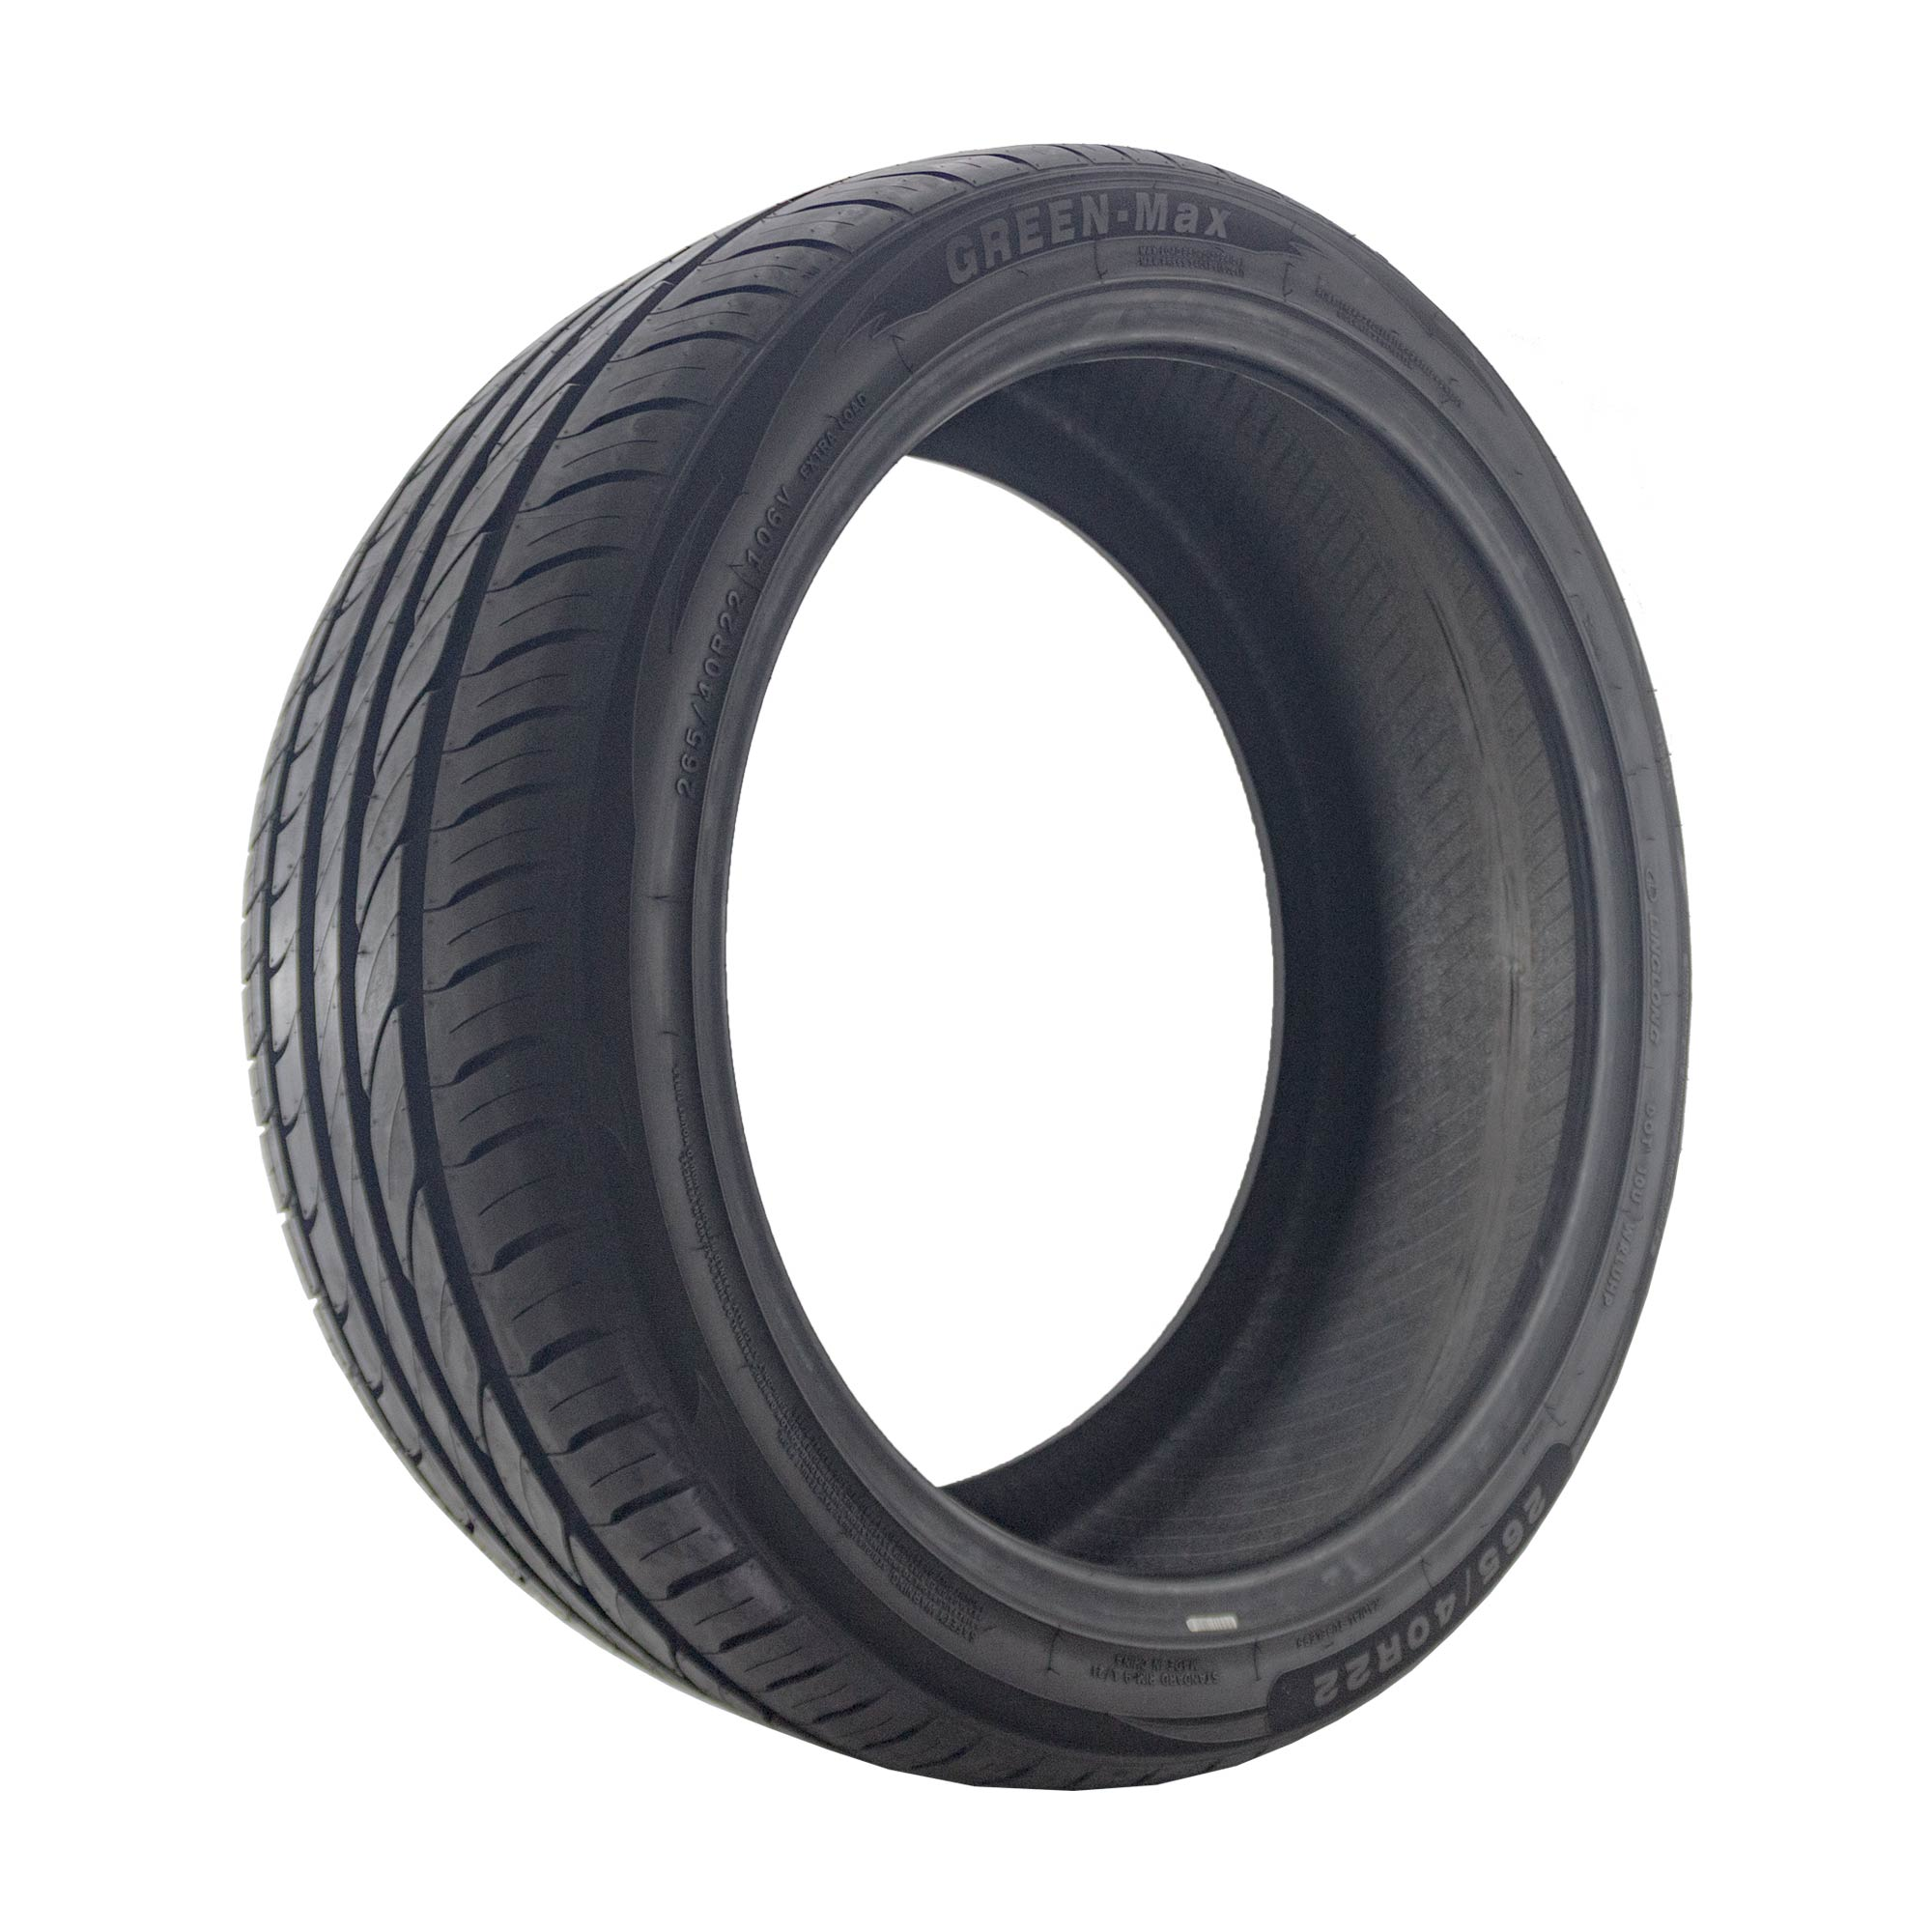 Pneu 265/40 R22 Linglong Green Max 106V